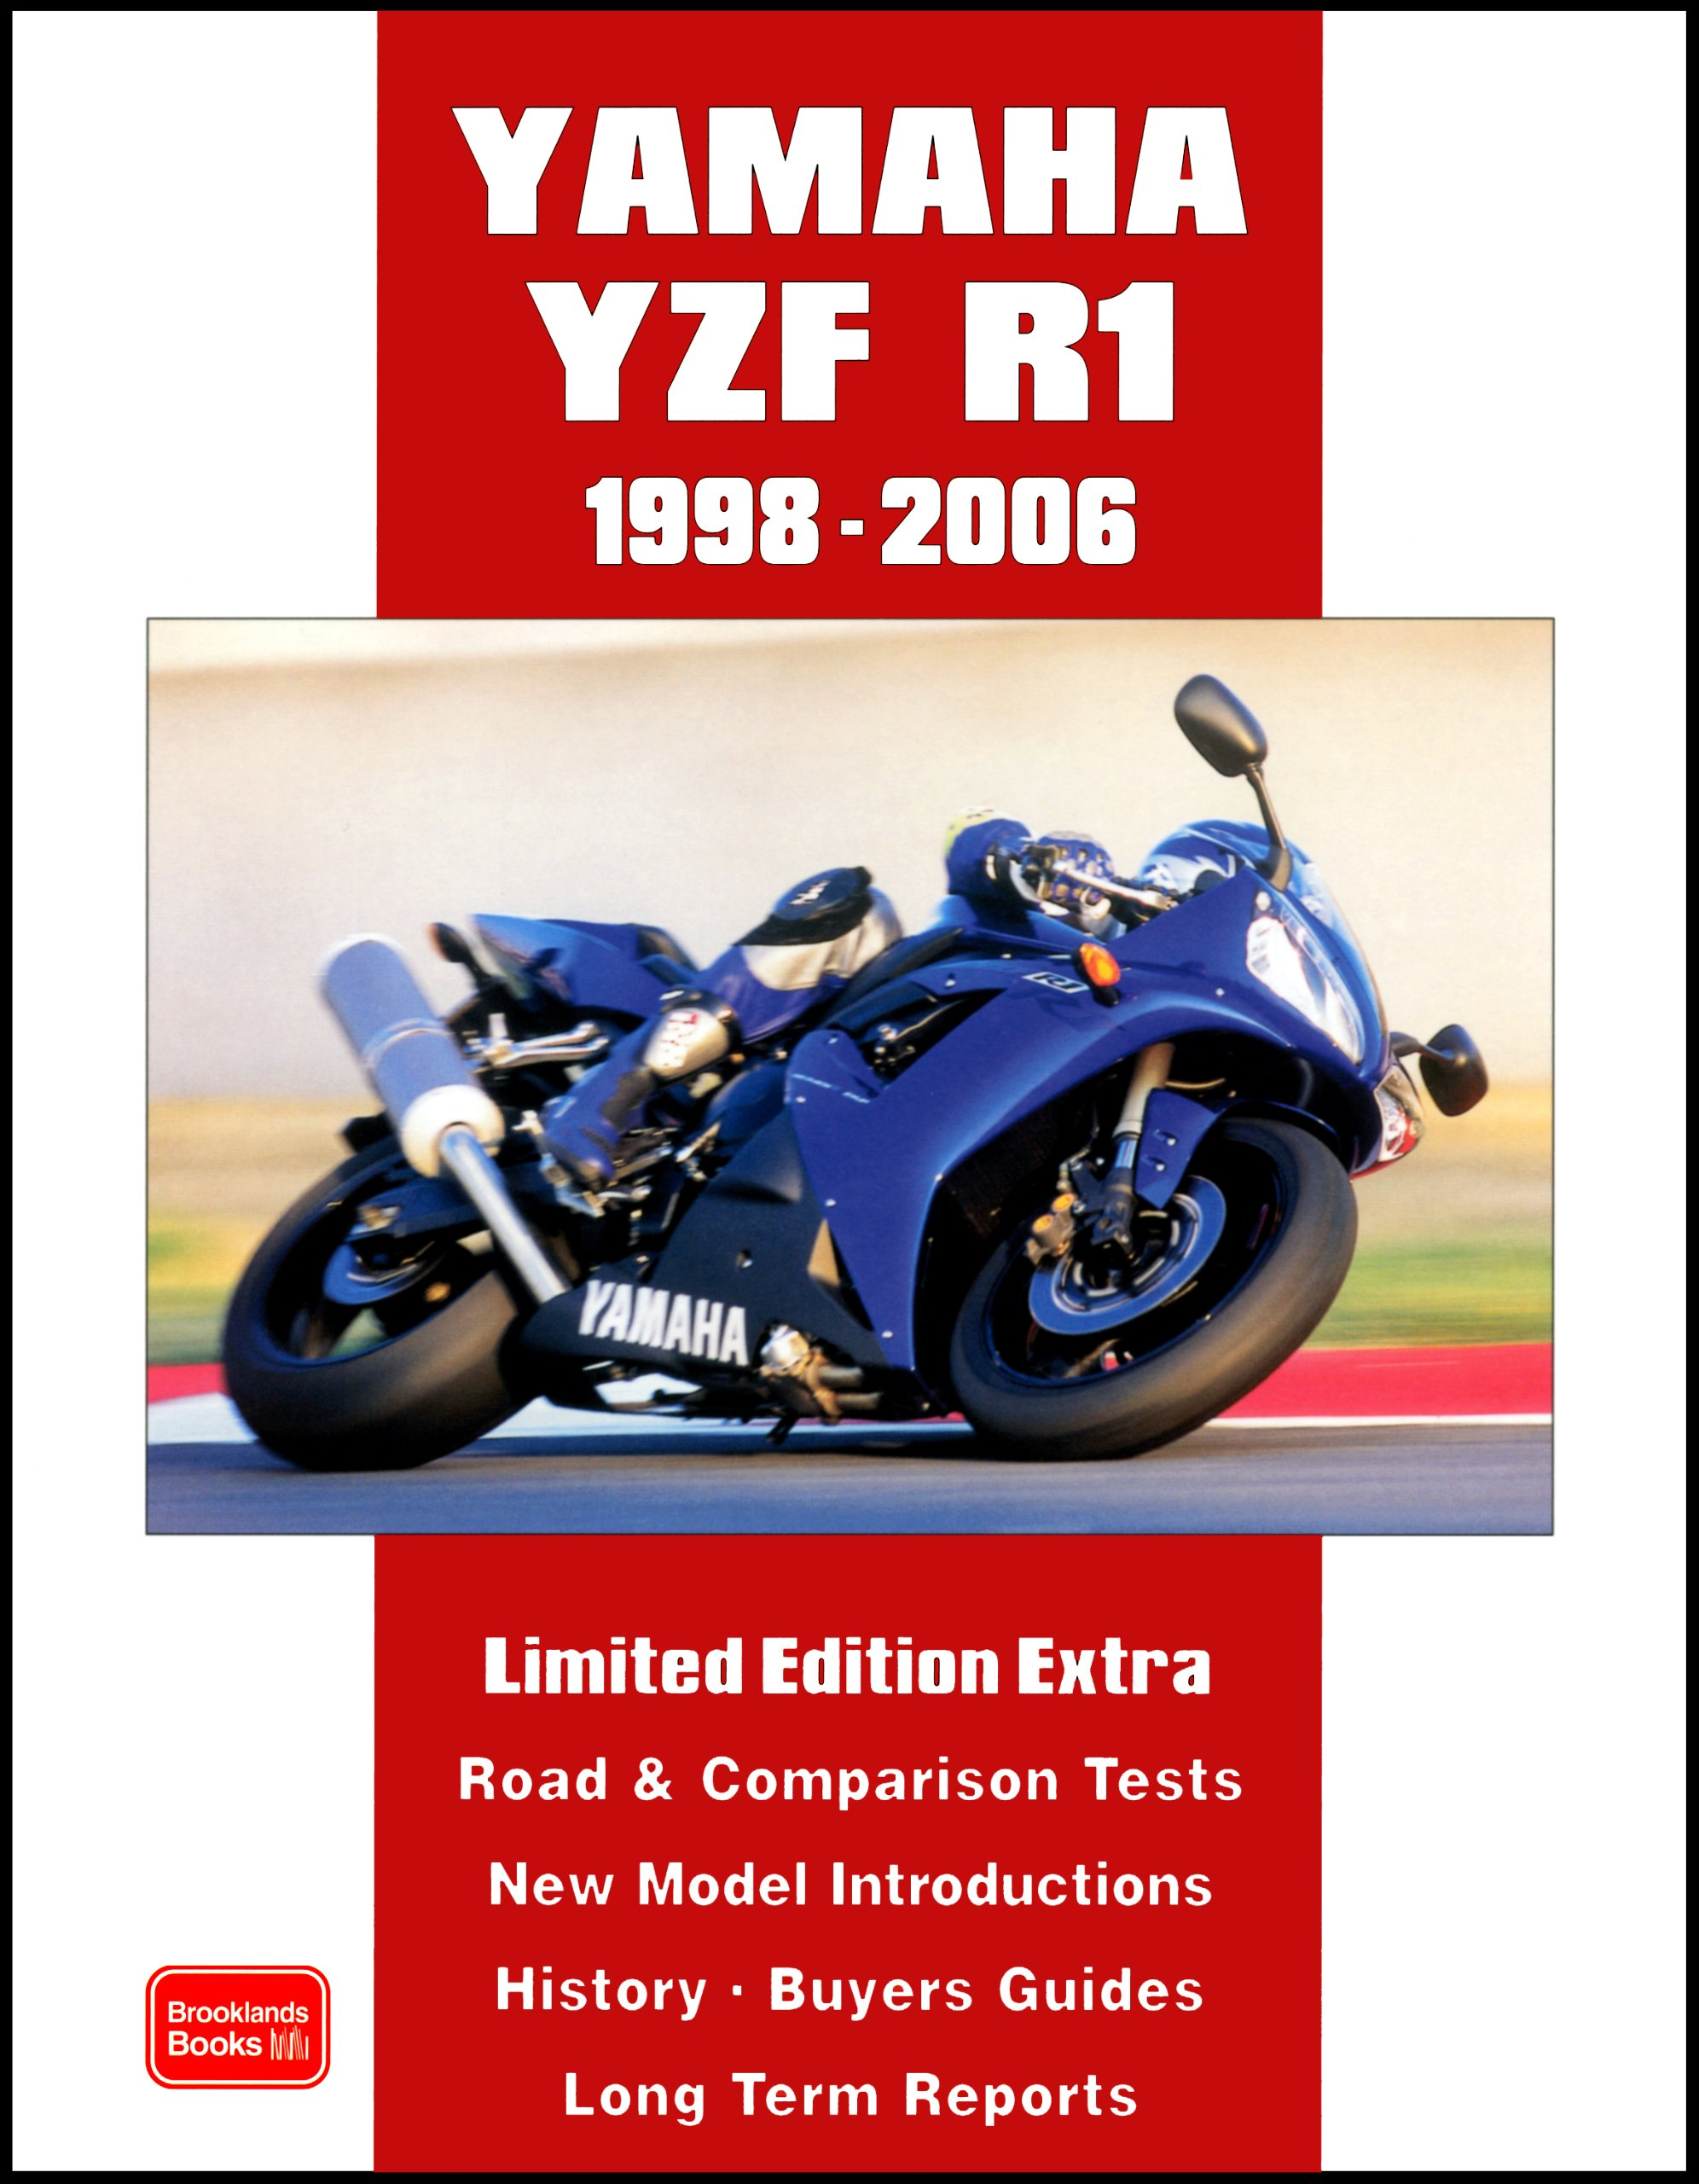 Yamaha YZF R1 Limited Edition Extra 1998-2006 (Brooklands Books Road